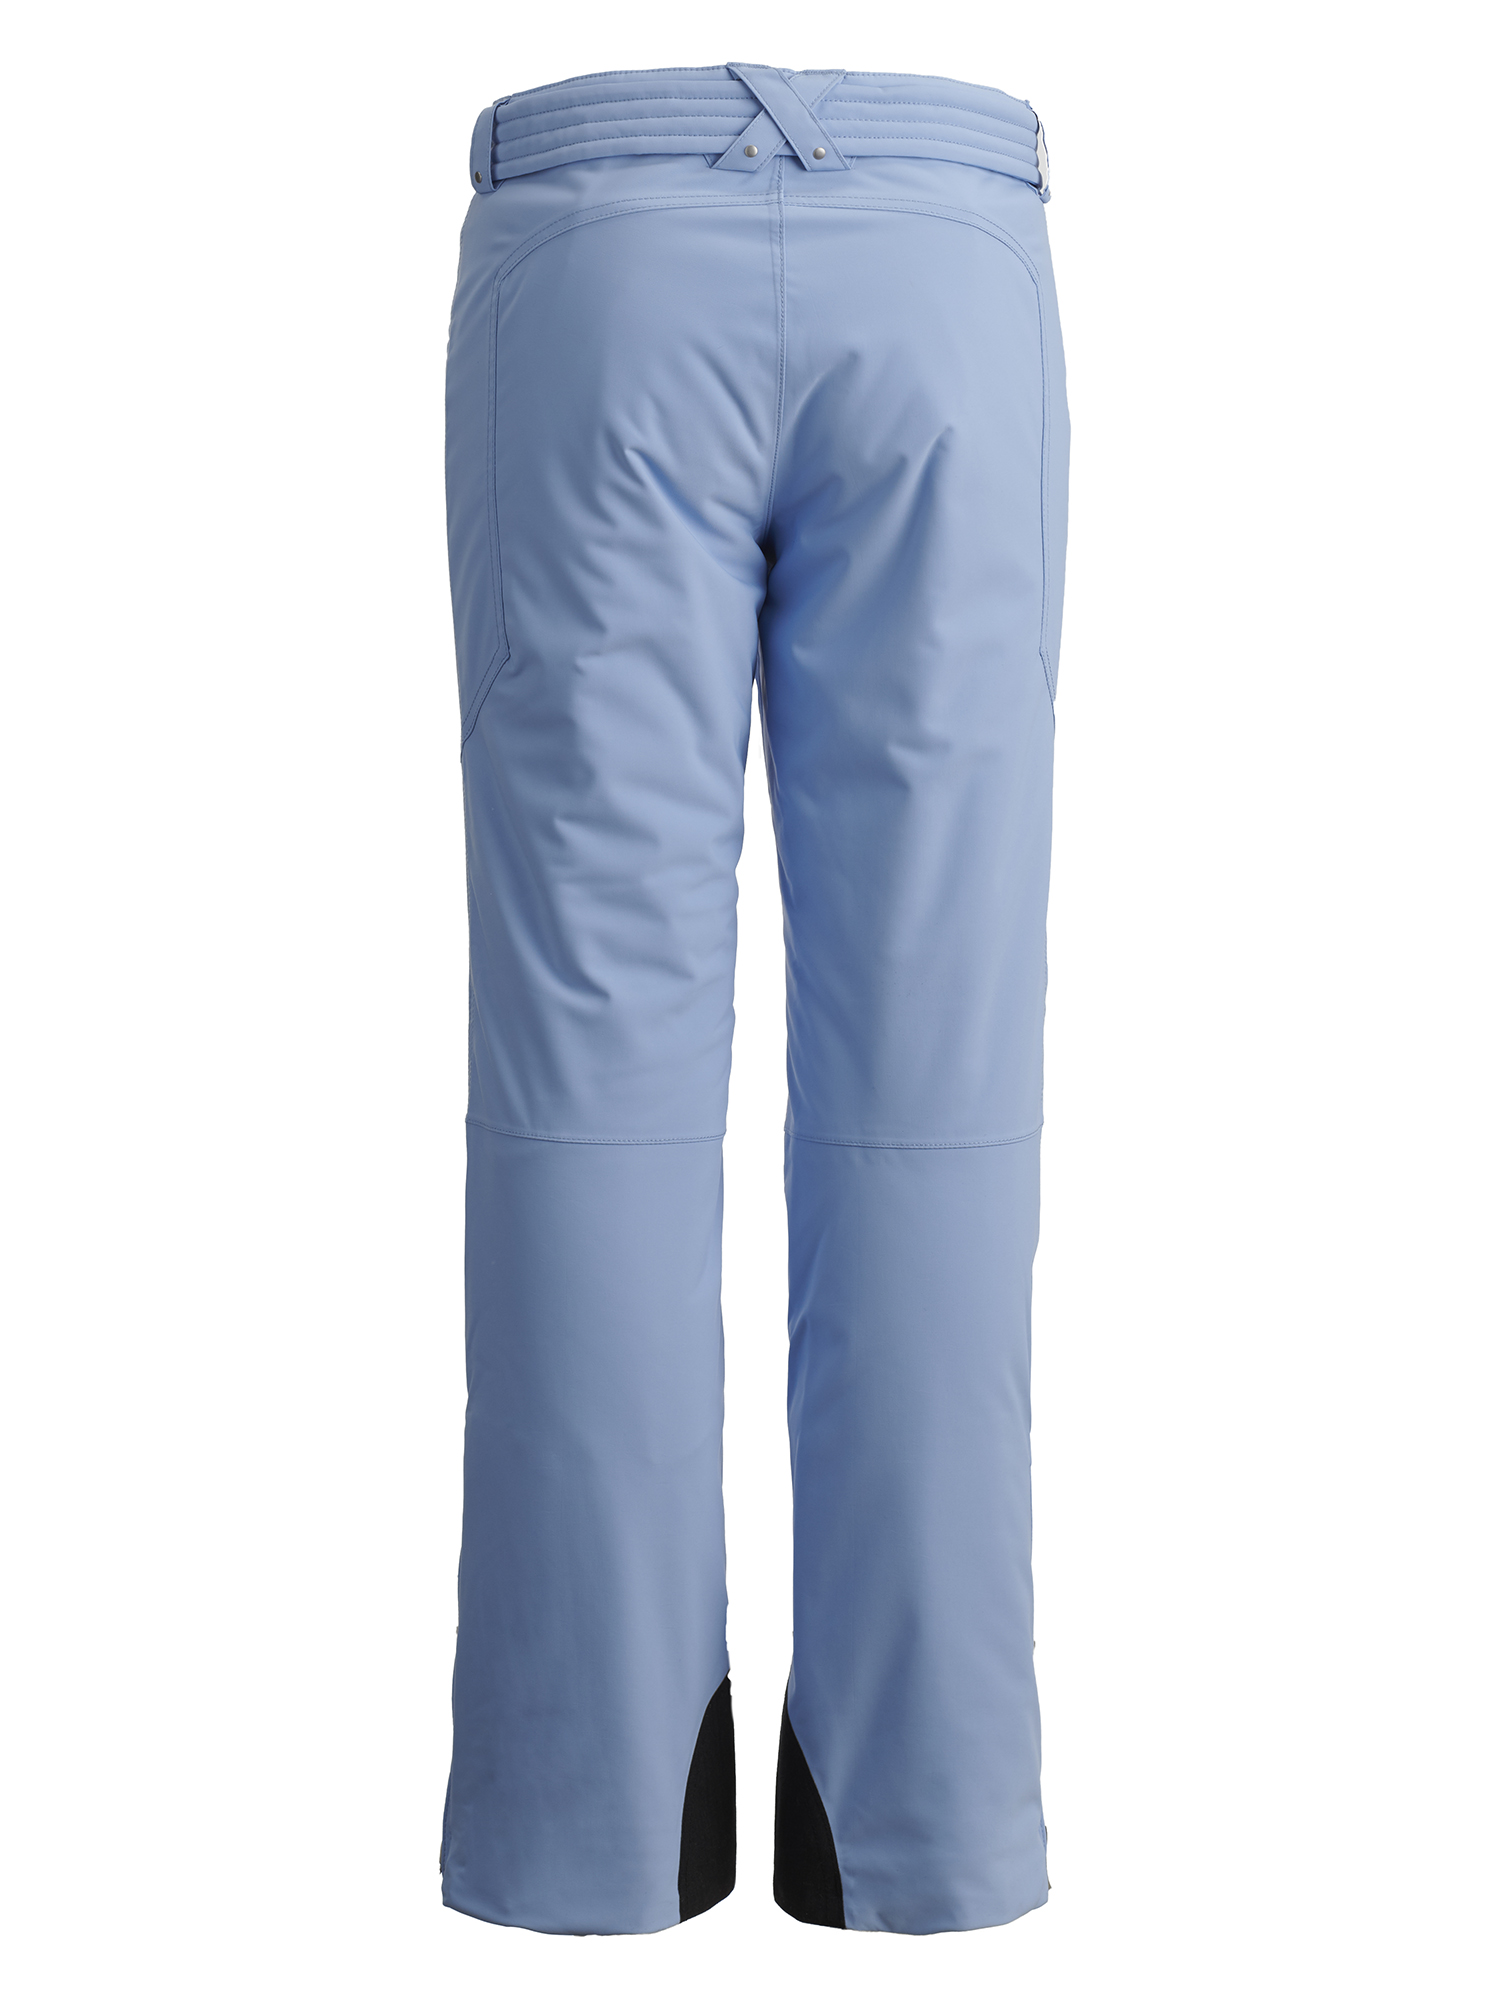 Search Results For Gorsuch Andrew Smith Navy Formal Trousers 38